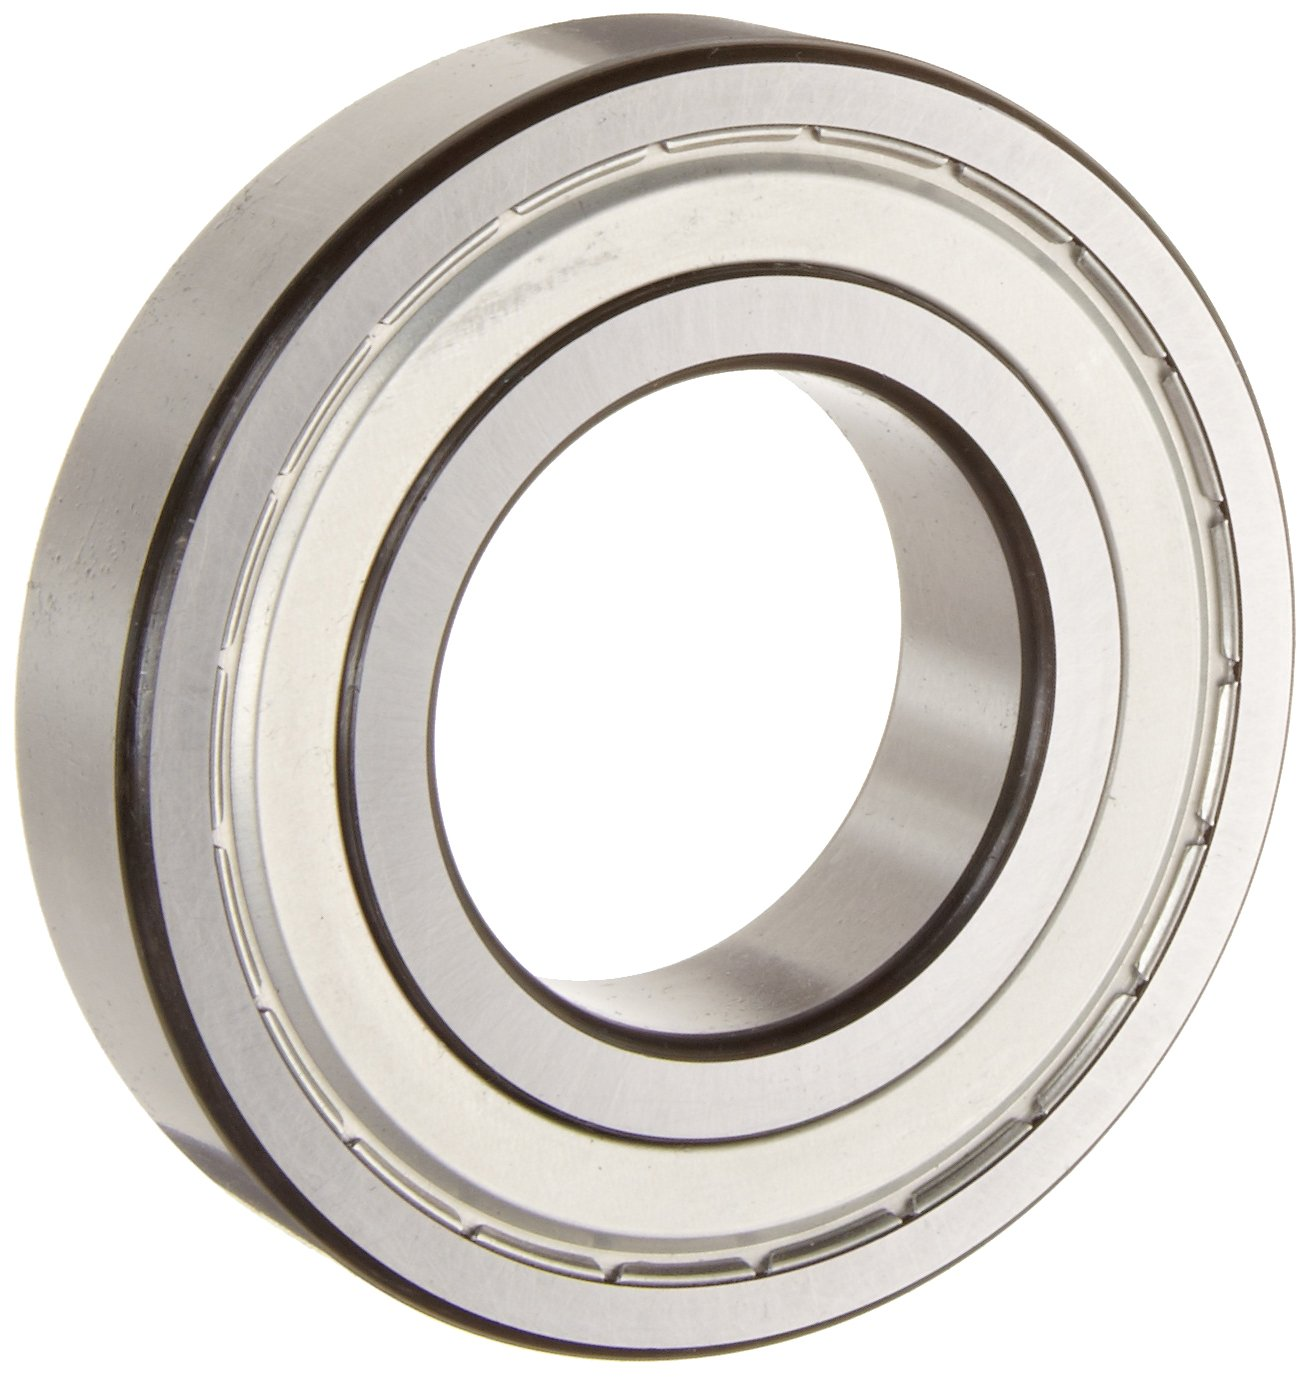 SKF 6204 2ZJEM Our shop most popular Super popular specialty store Light Series Ball Deep Groov Groove Bearing